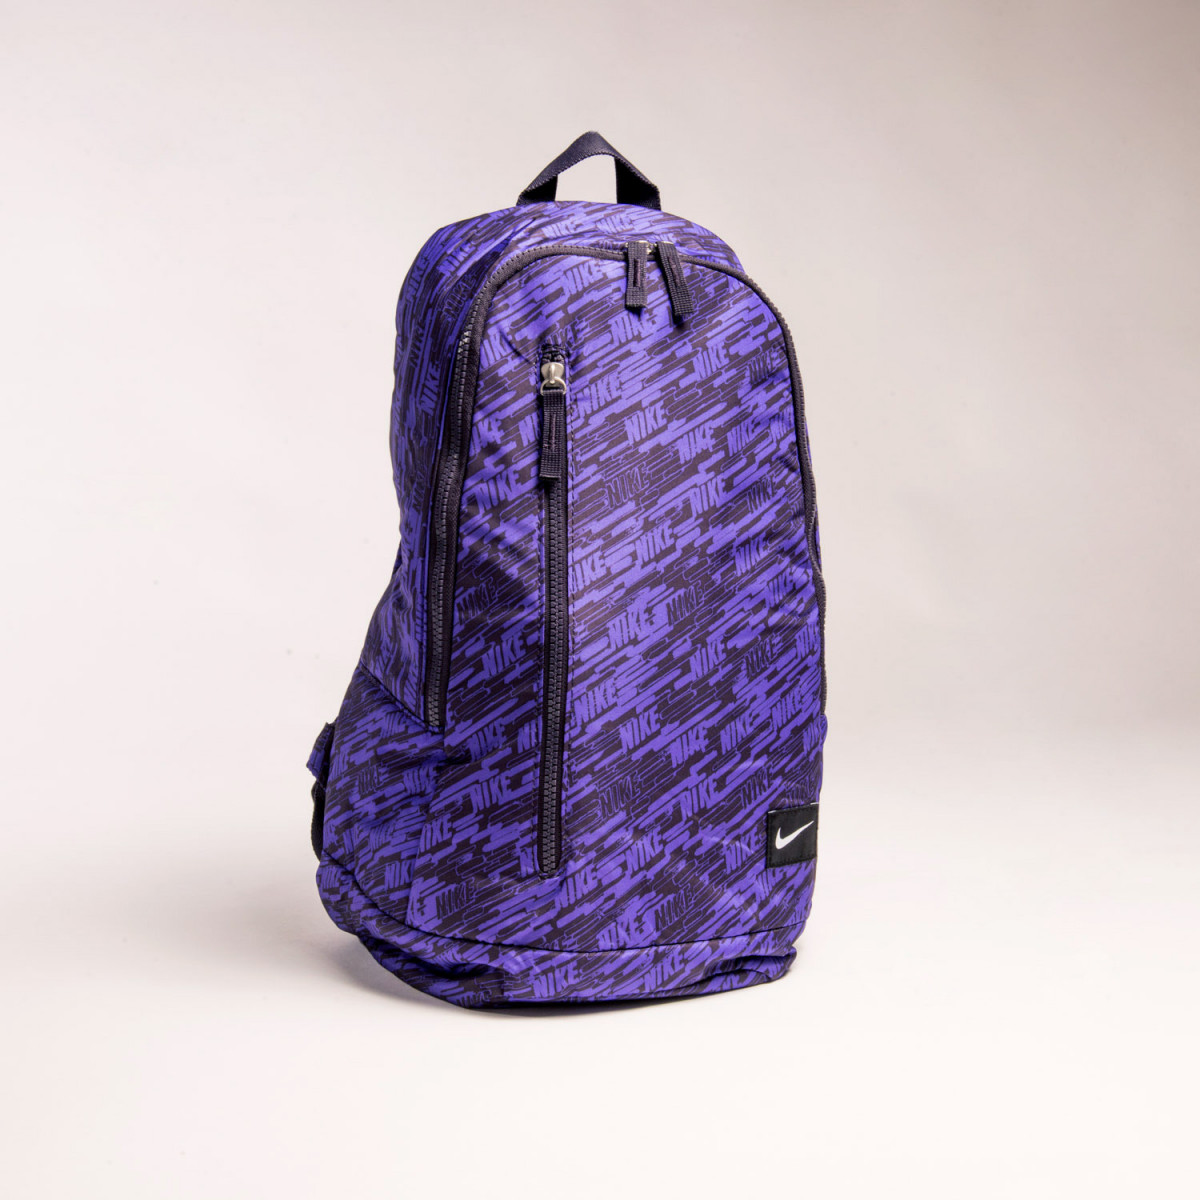 MOCHILA NIKE WOMENS BACKPACK